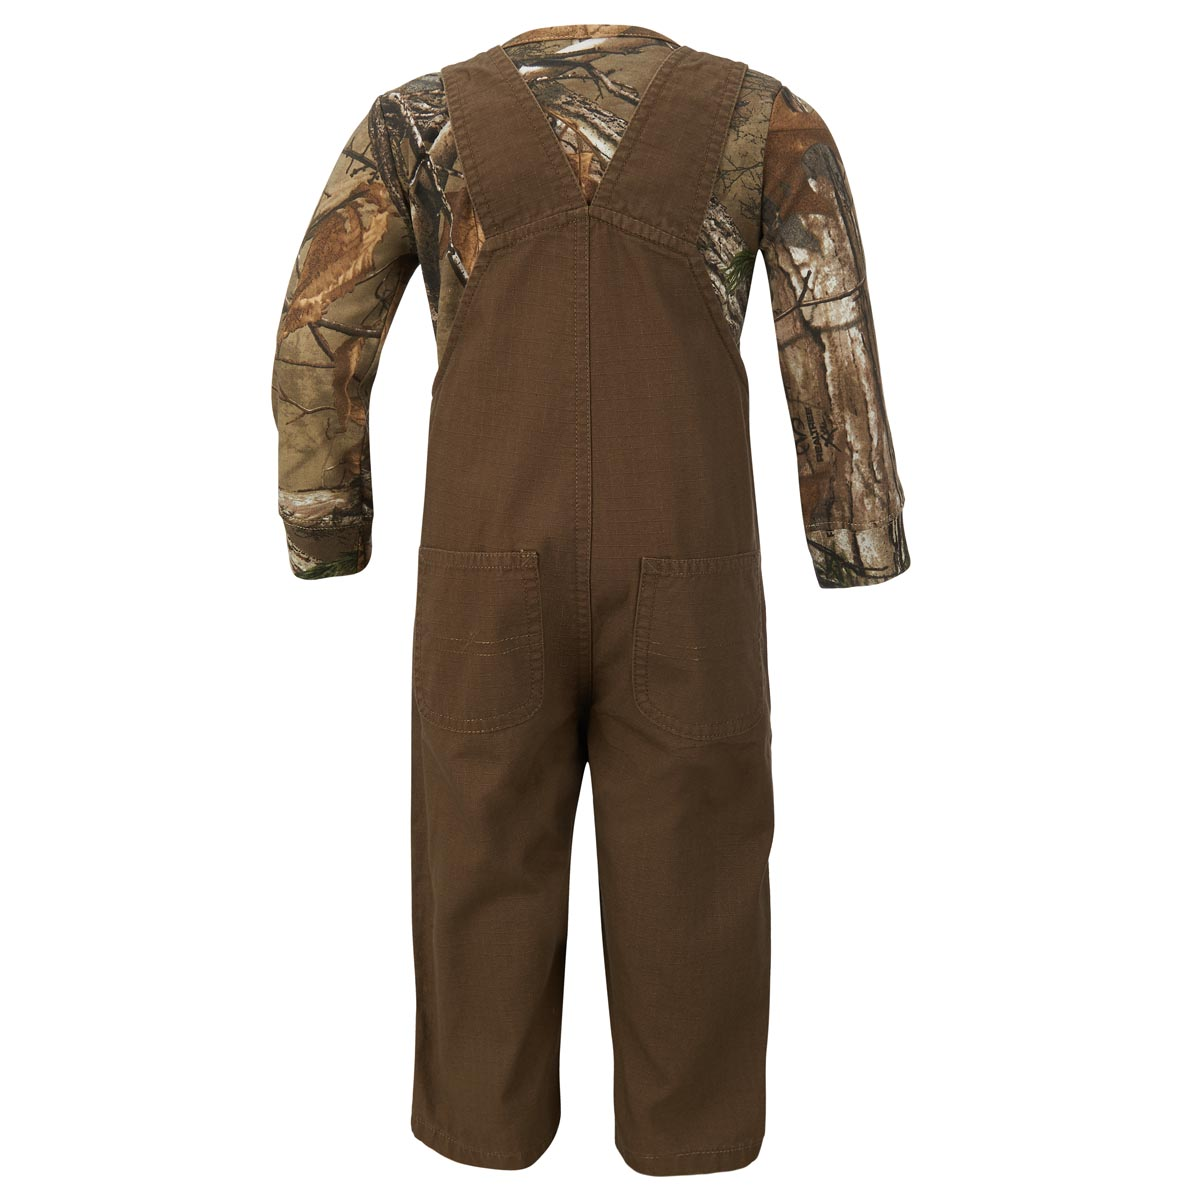 Carhartt Infant Boys' Camo Coverall Set